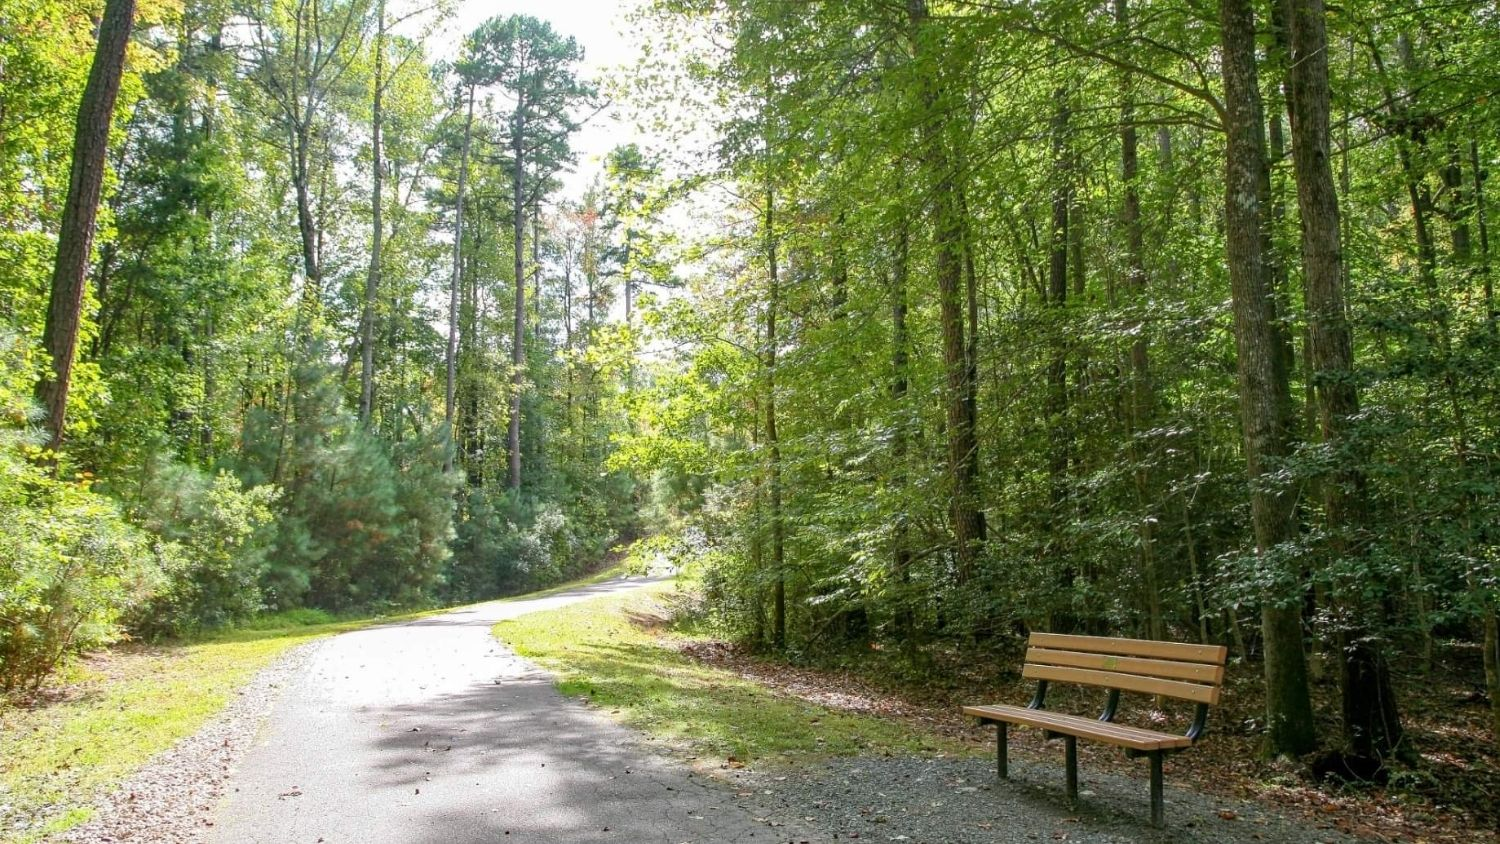 A park in Raleigh, North Carolina.